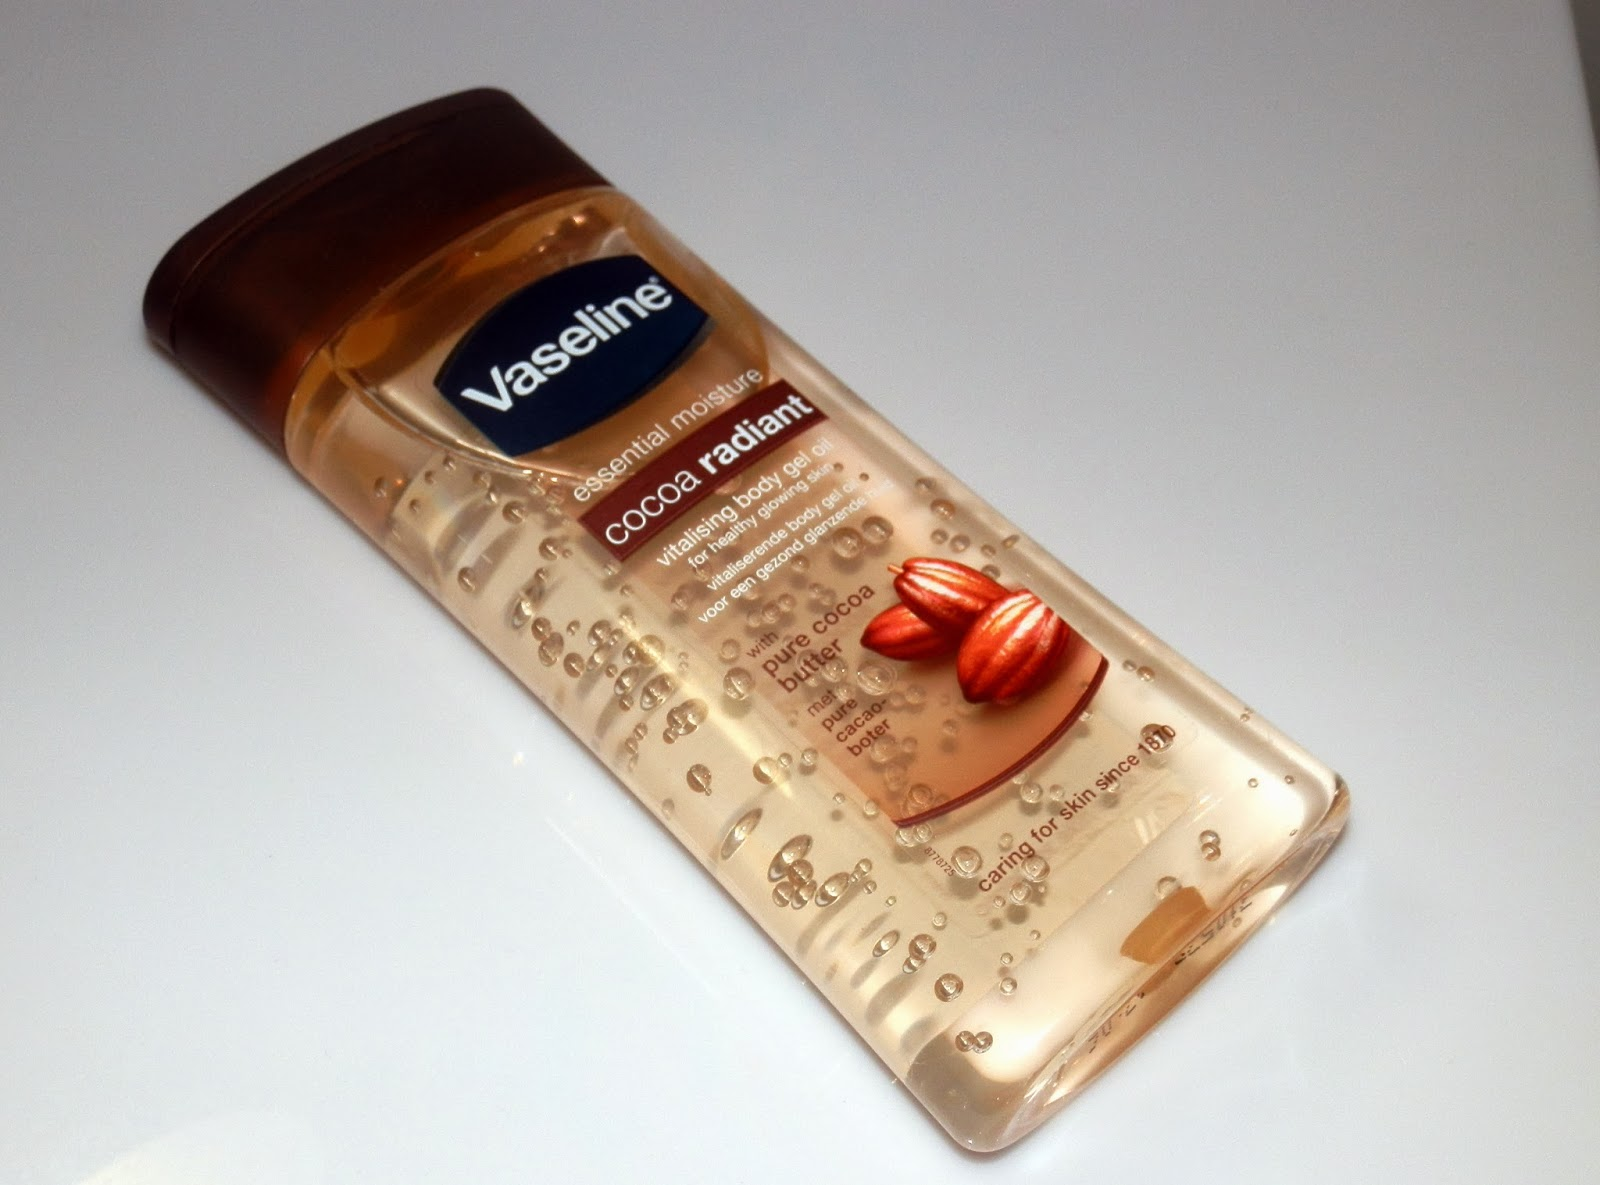 Vaseline Cocoa Butter Vitalising Gel Body Oil Reviews